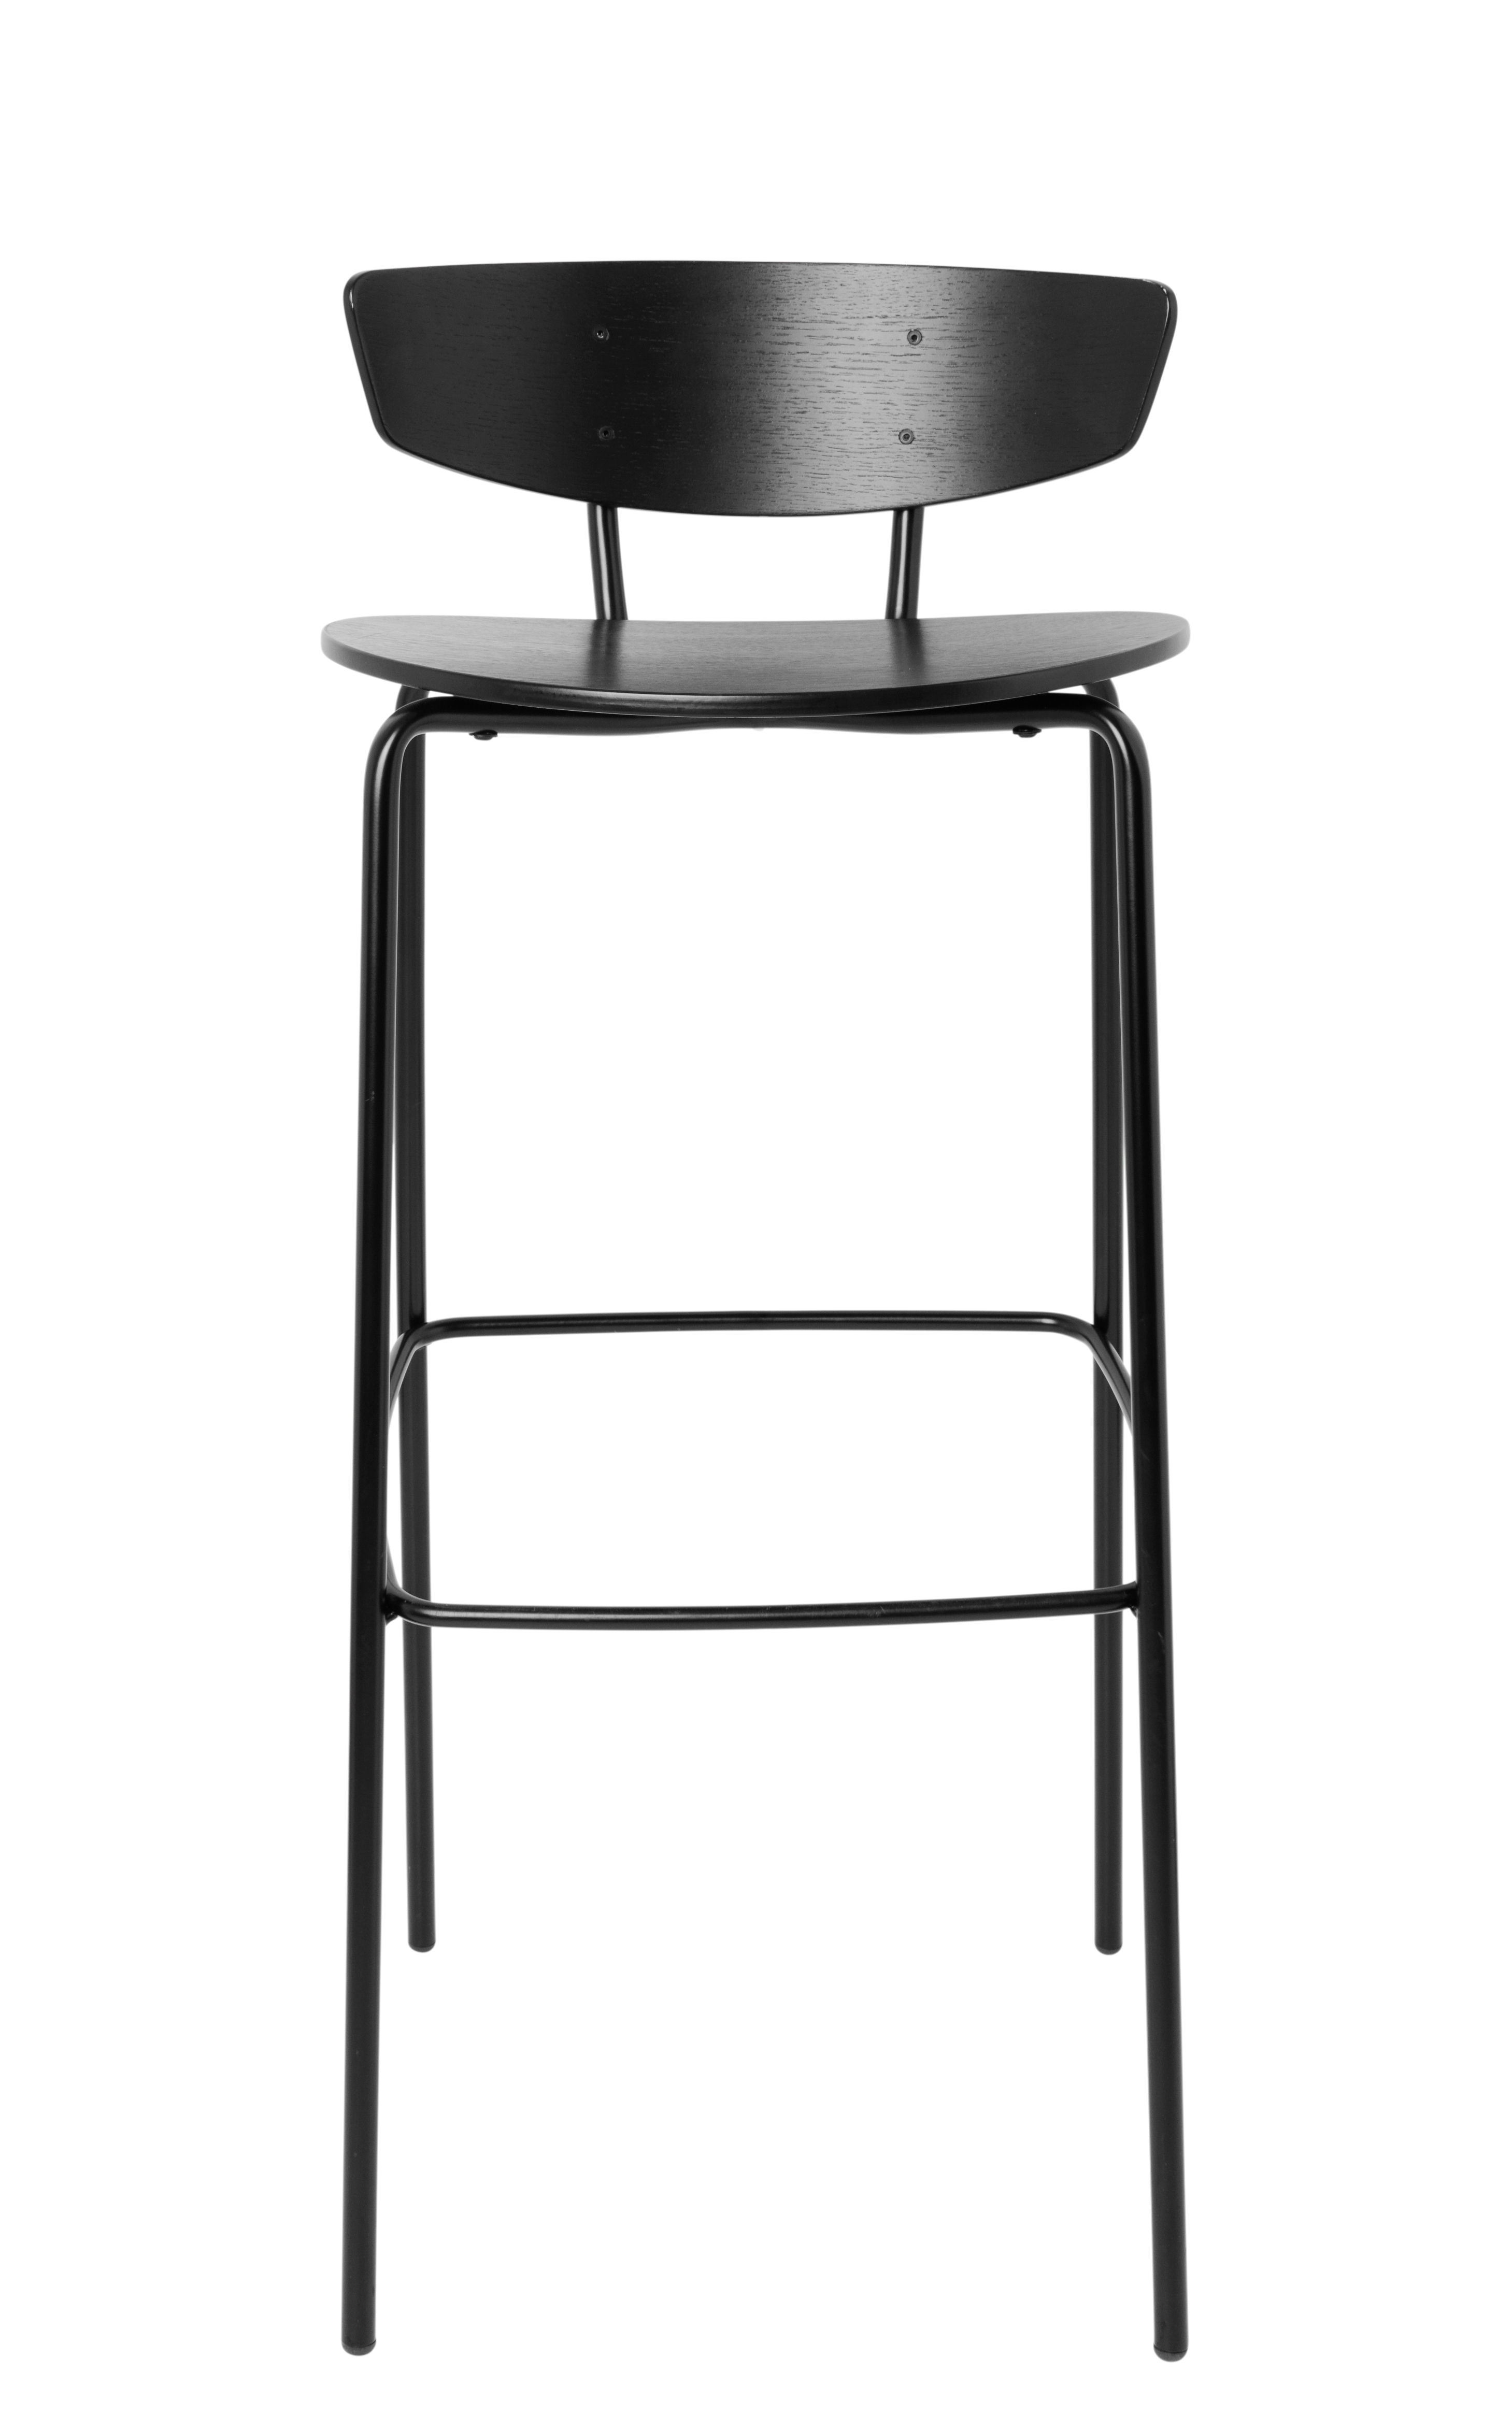 Furniture - Bar Stools - Herman Bar chair - / High - H 76 cm by Ferm Living - Large H 76 cm / Noir - Epoxy lacquered steel, Lacquered oak plywood